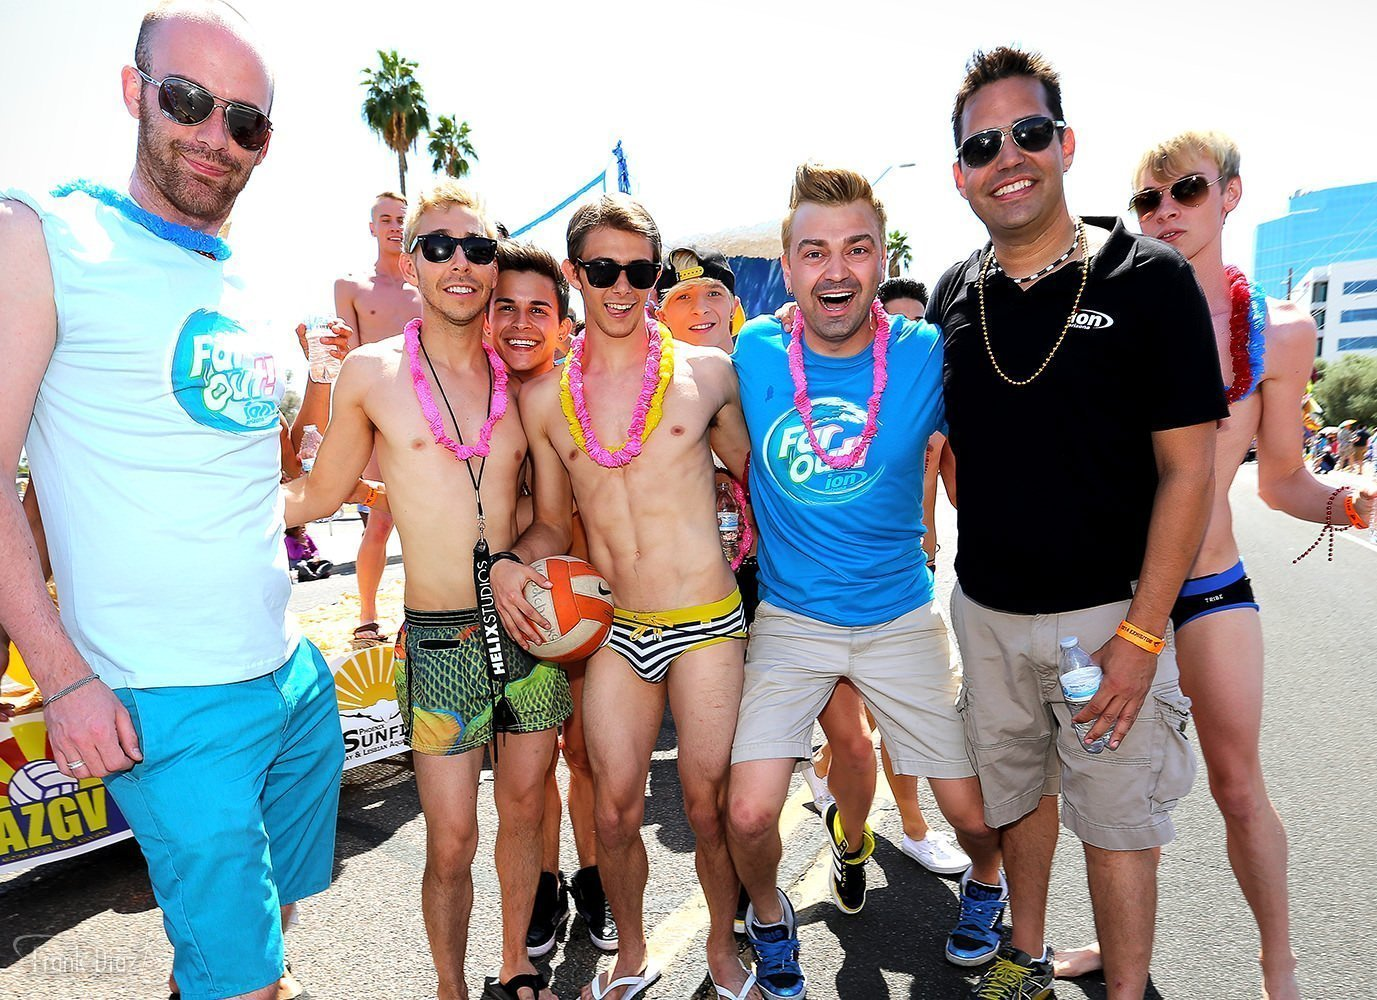 from Issac phoenix gay pride parade